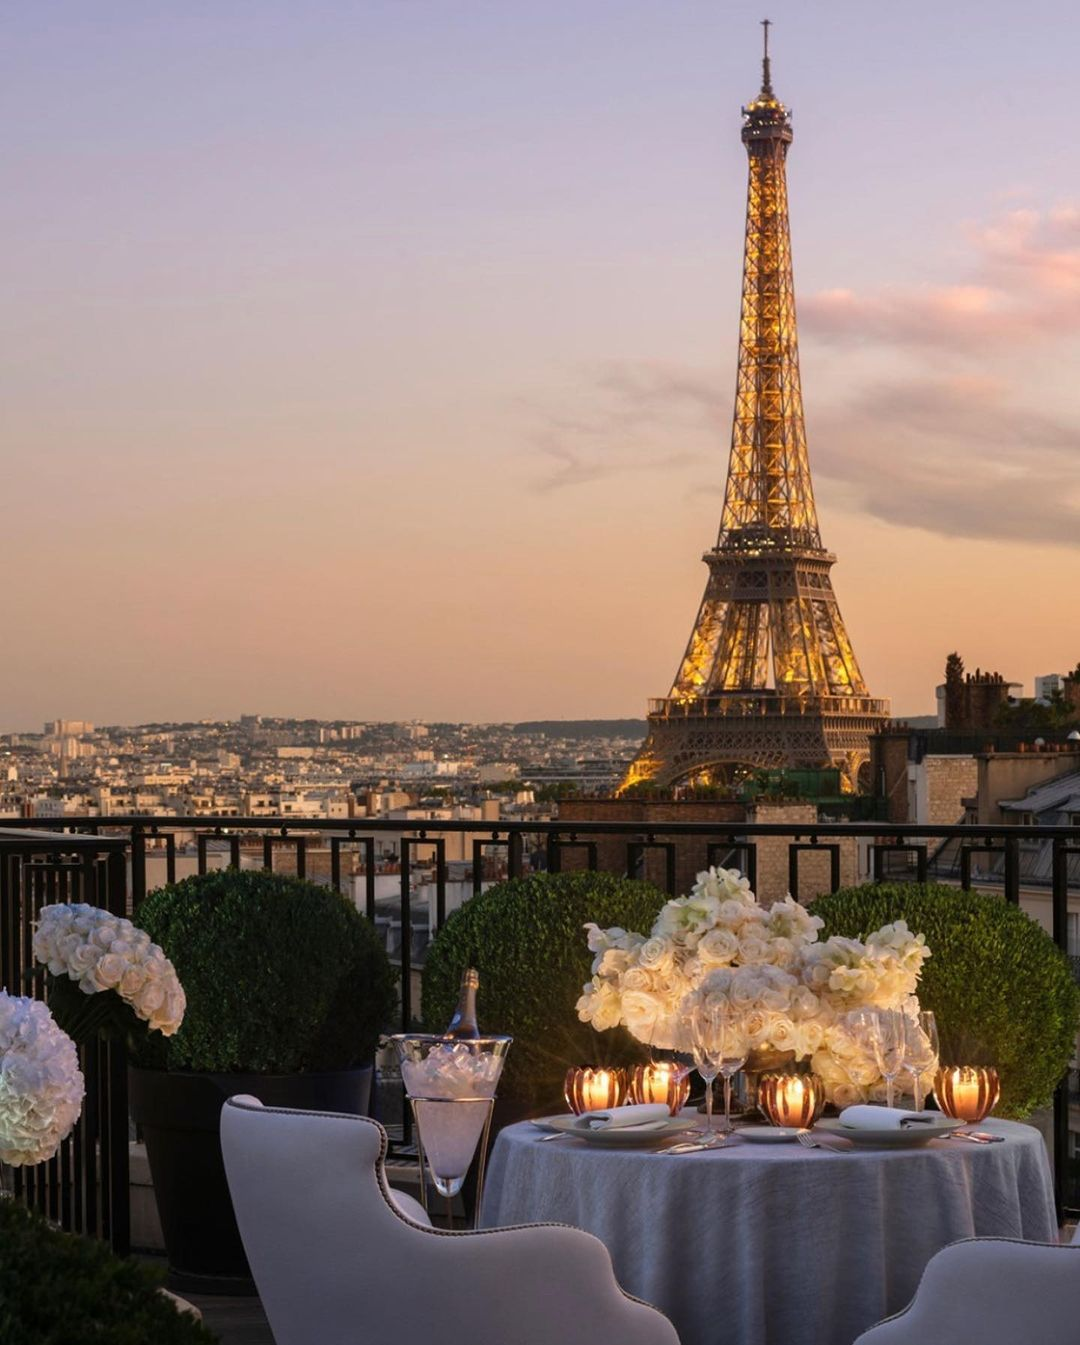 romantic dinner in front of the eiffel tower